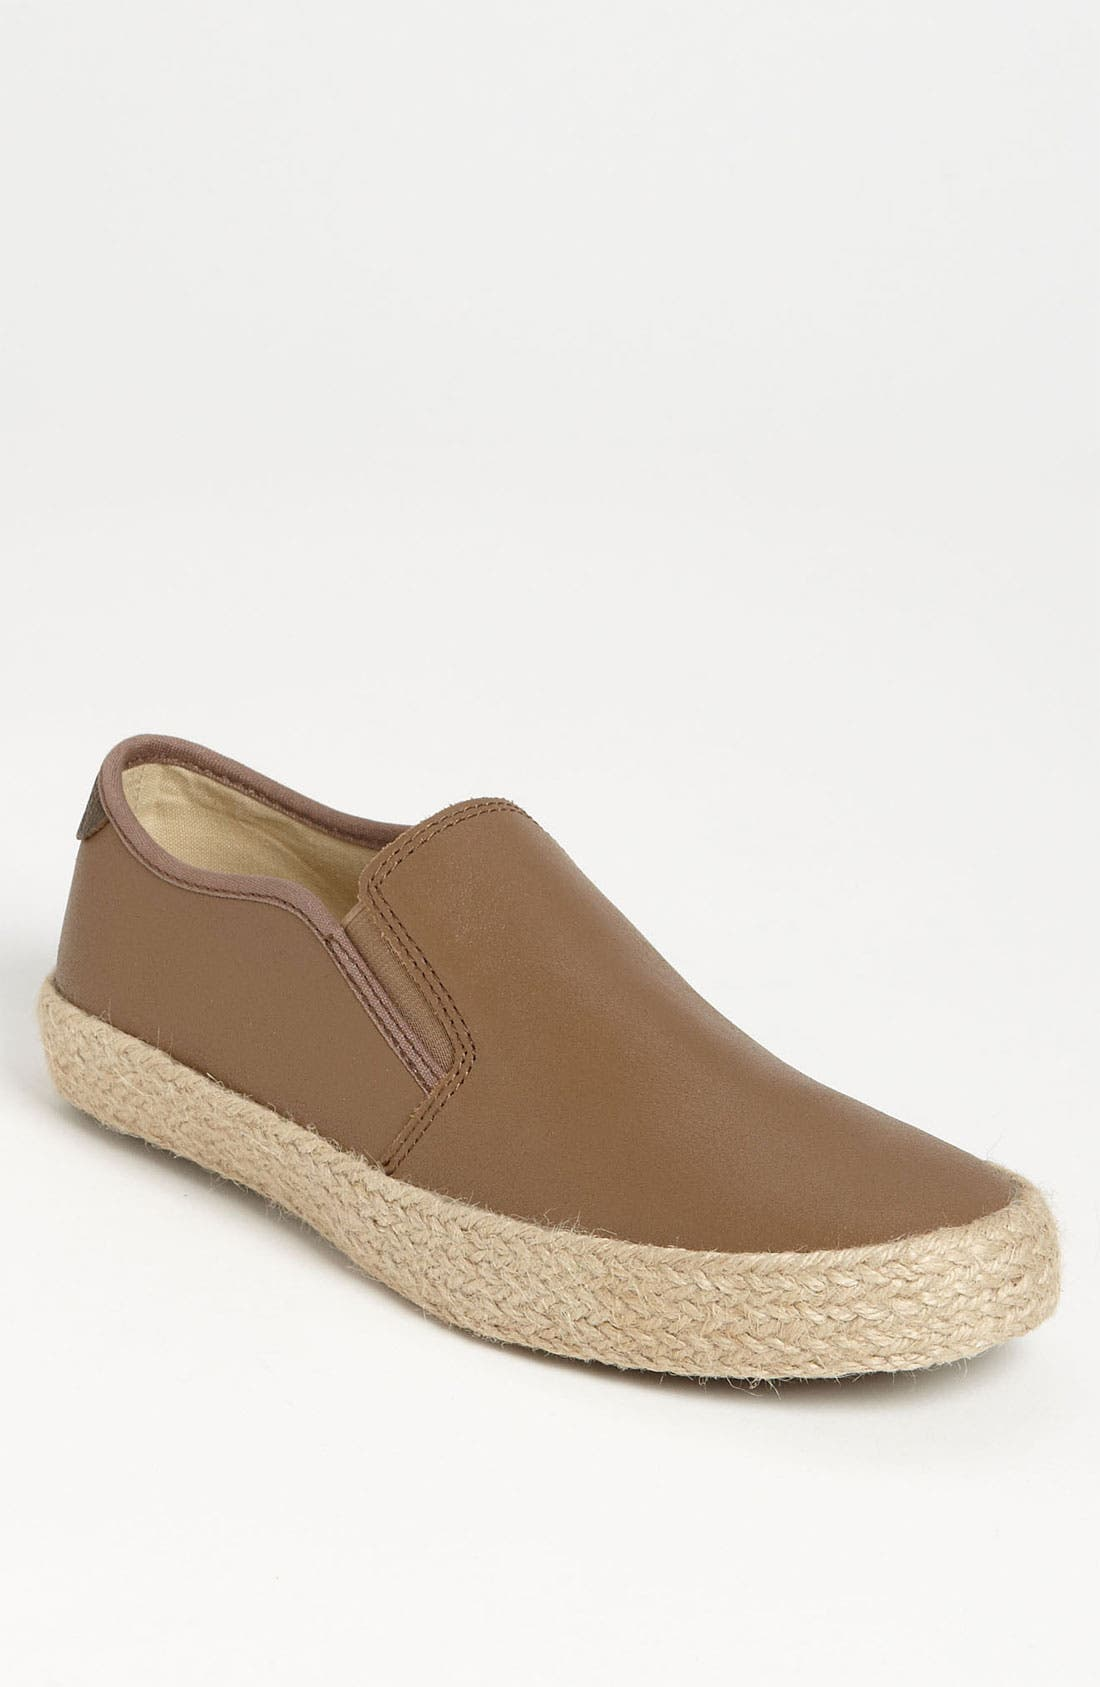 Alternate Image 1 Selected - Original Penguin 'Espy' Espadrille Slip-On